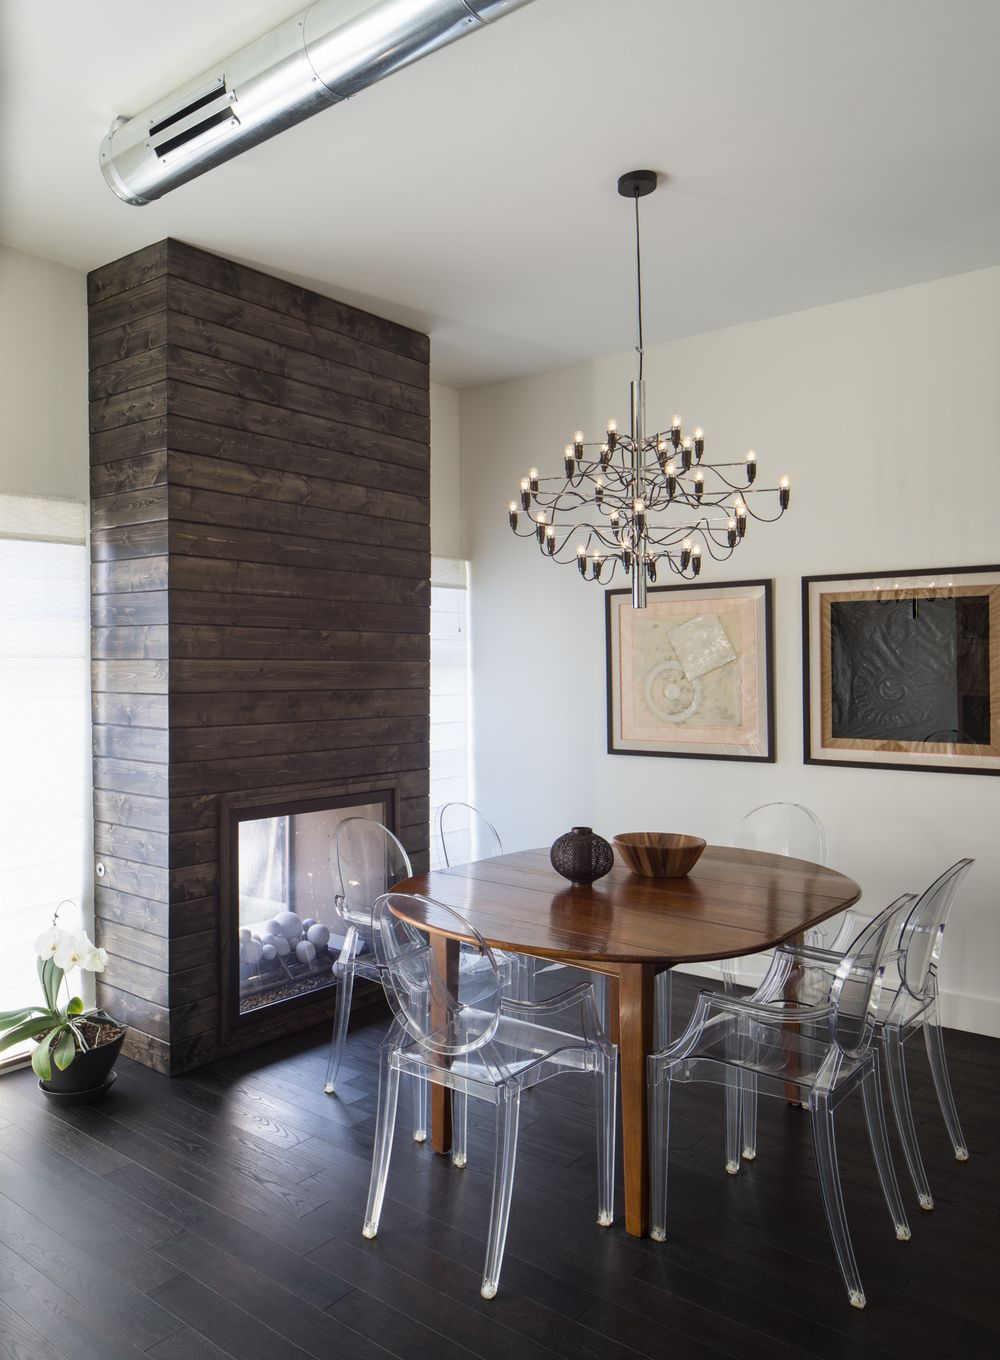 While Wood Is The Major Design Element In This Contemporary Dining Room,  The Ghost Chairs